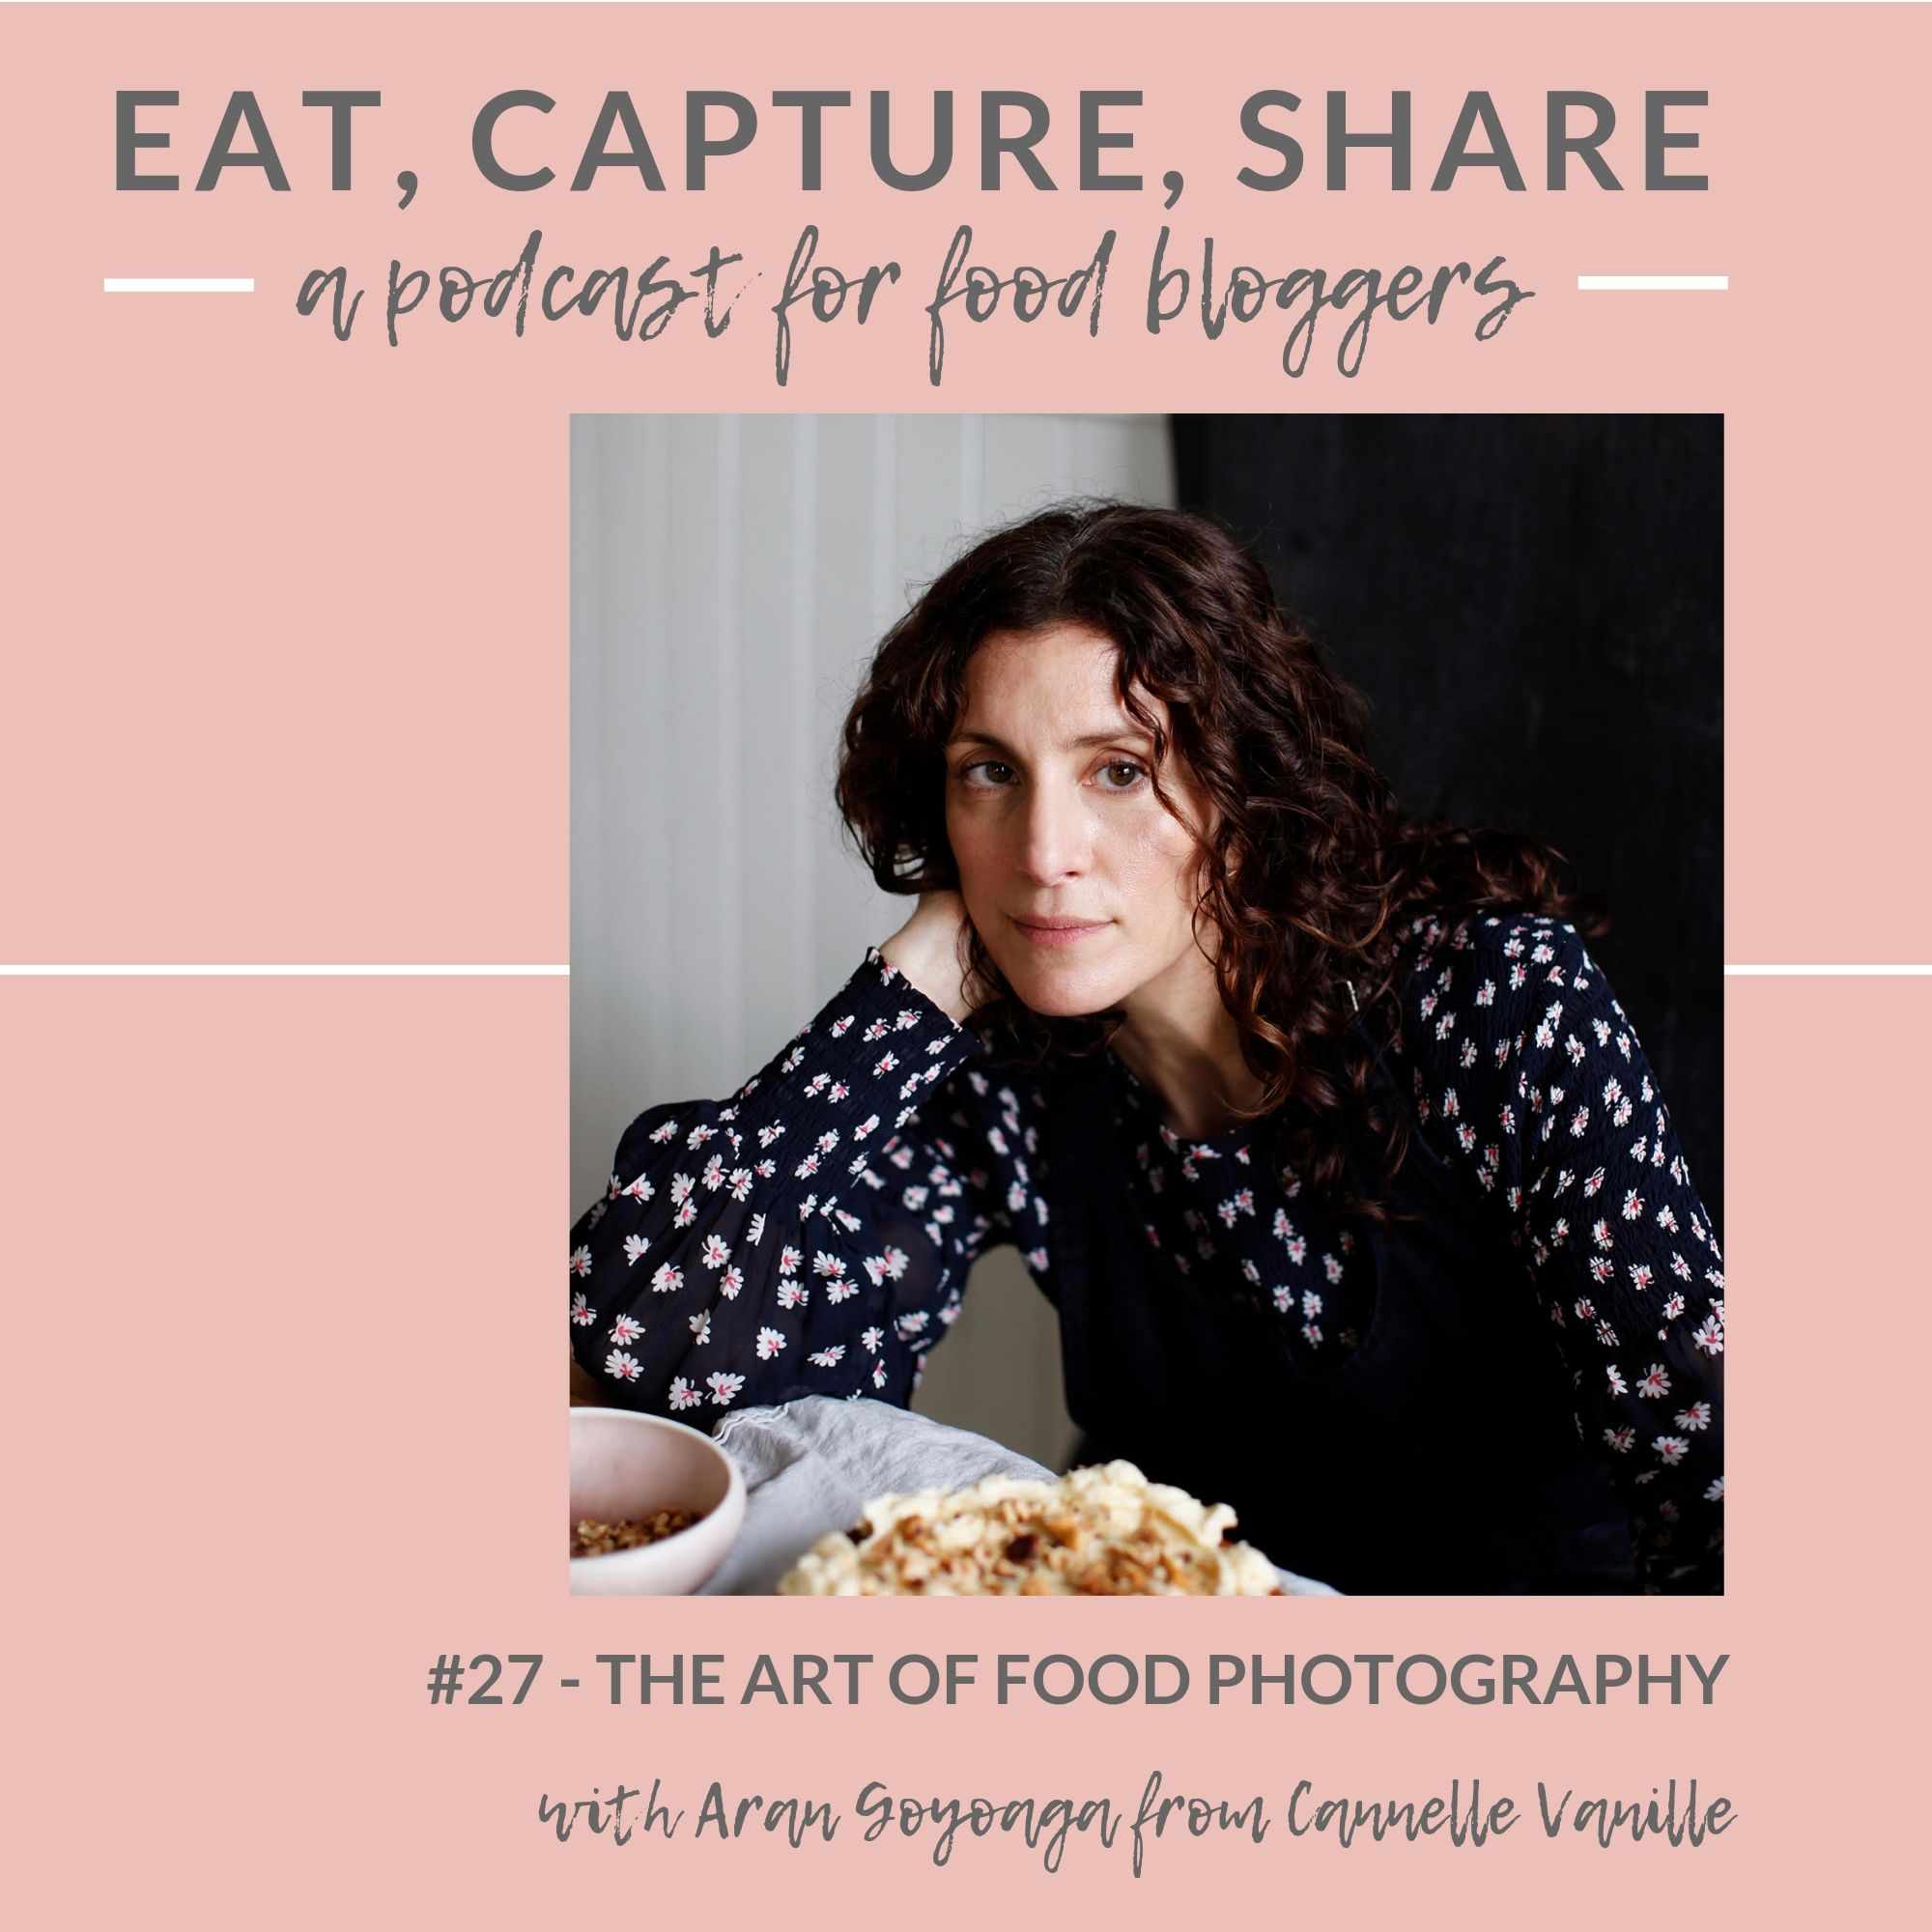 The art of food photography with Aran Goyoaga - Eat, Capture, Share Podcast